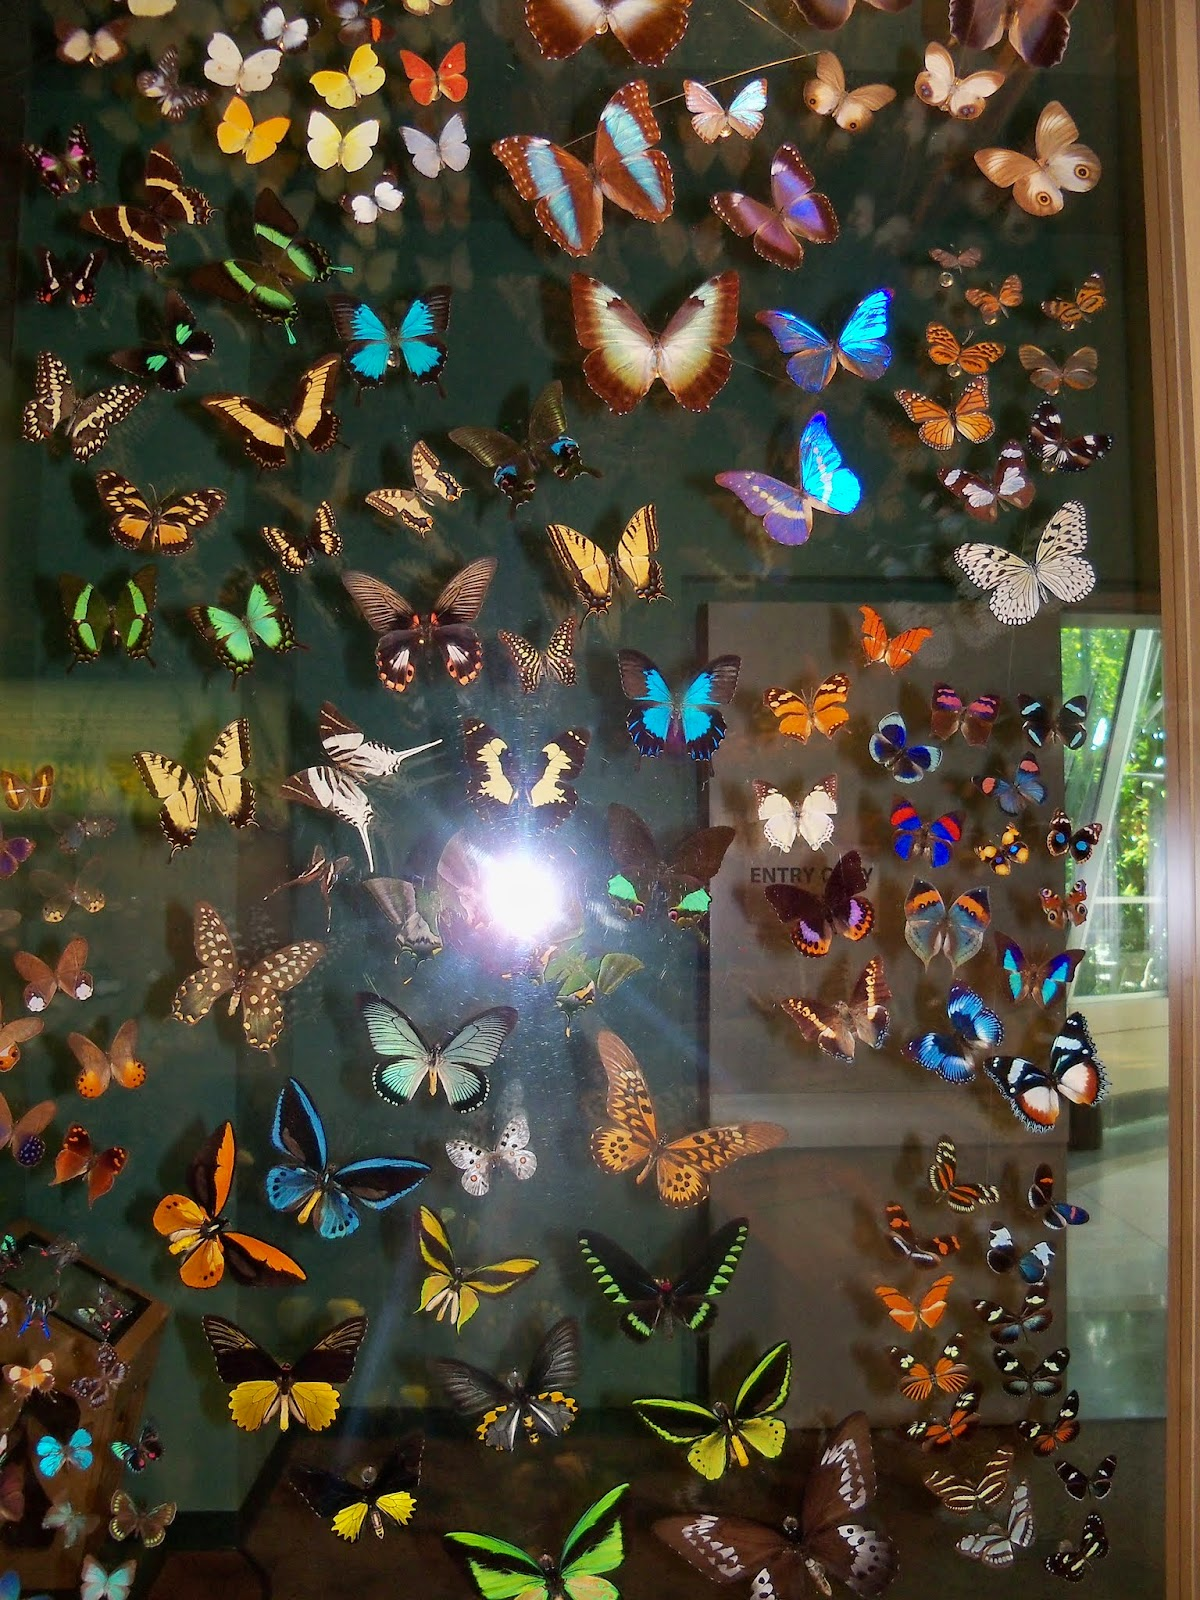 Houston Museum of Natural Science - 116_2860.JPG